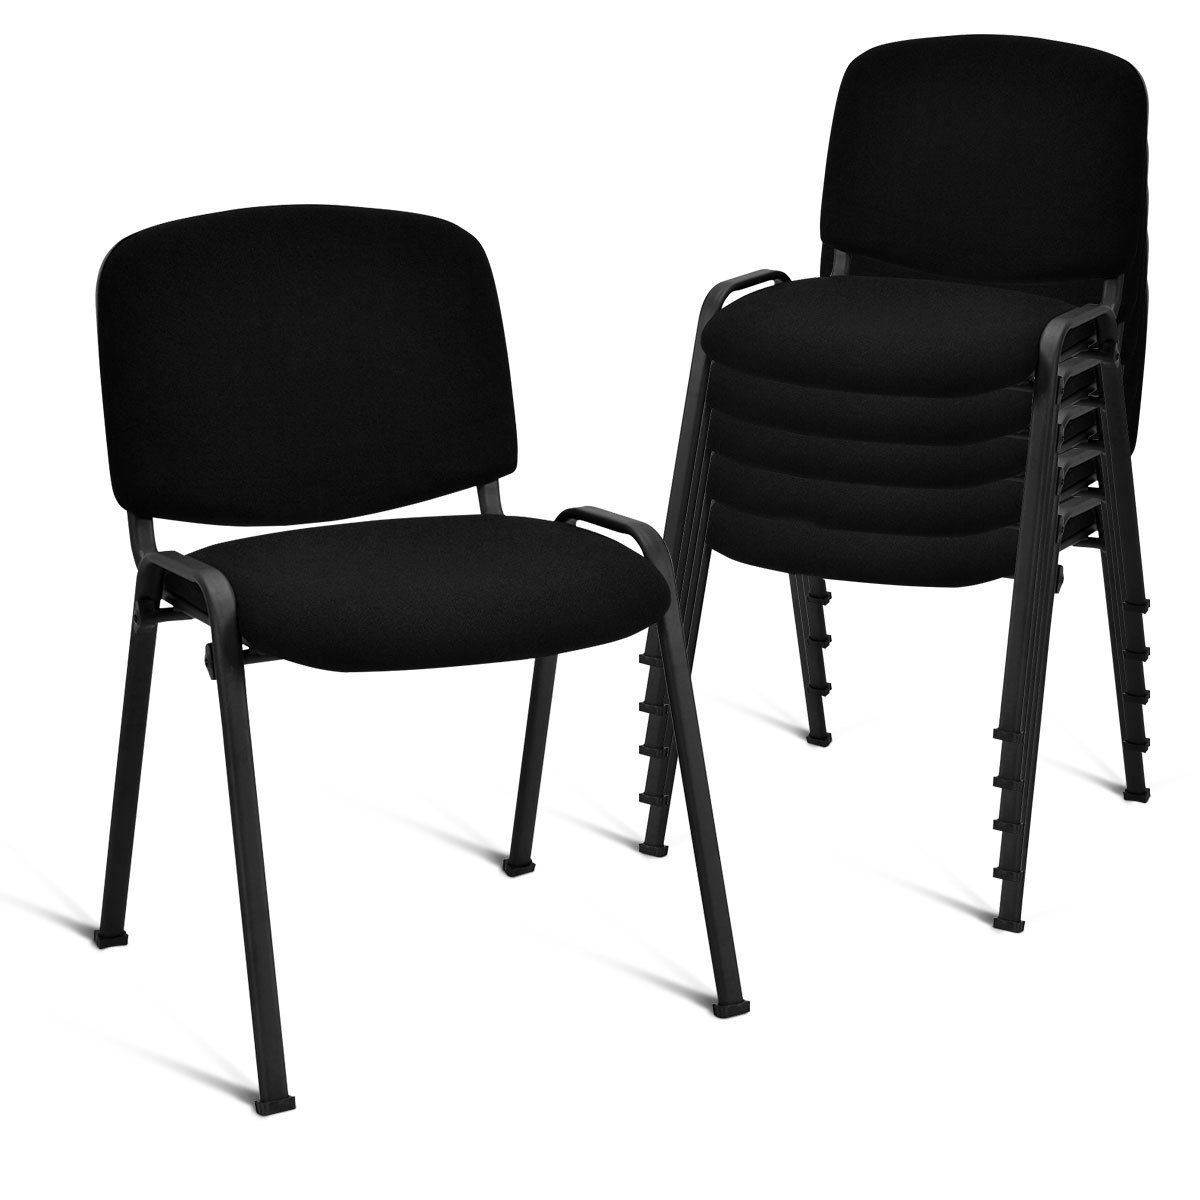 Costway Set Of 5 Conference Chair Elegant Design Office Waiting Room Guest Reception